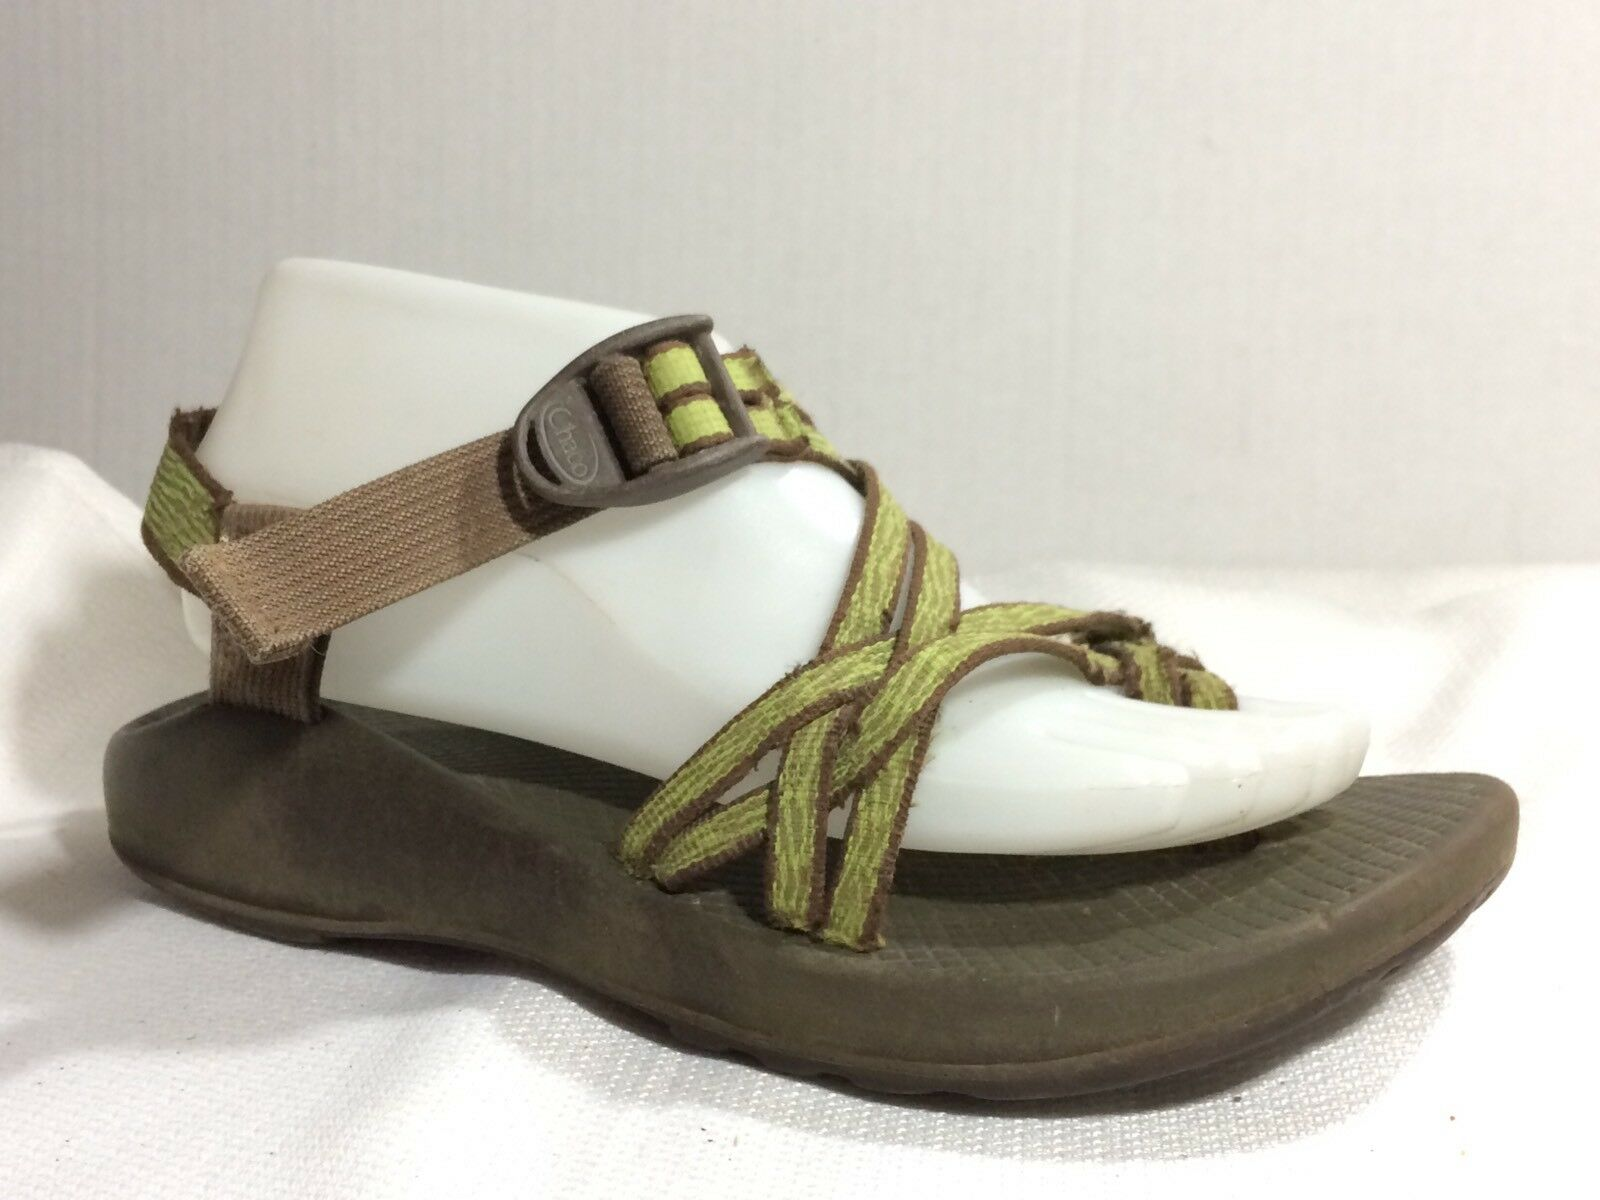 Chaco Zx2 Sandal Women 8 WIDE Green Brown Ankle Strap Strappy Vibram Hiking shoes